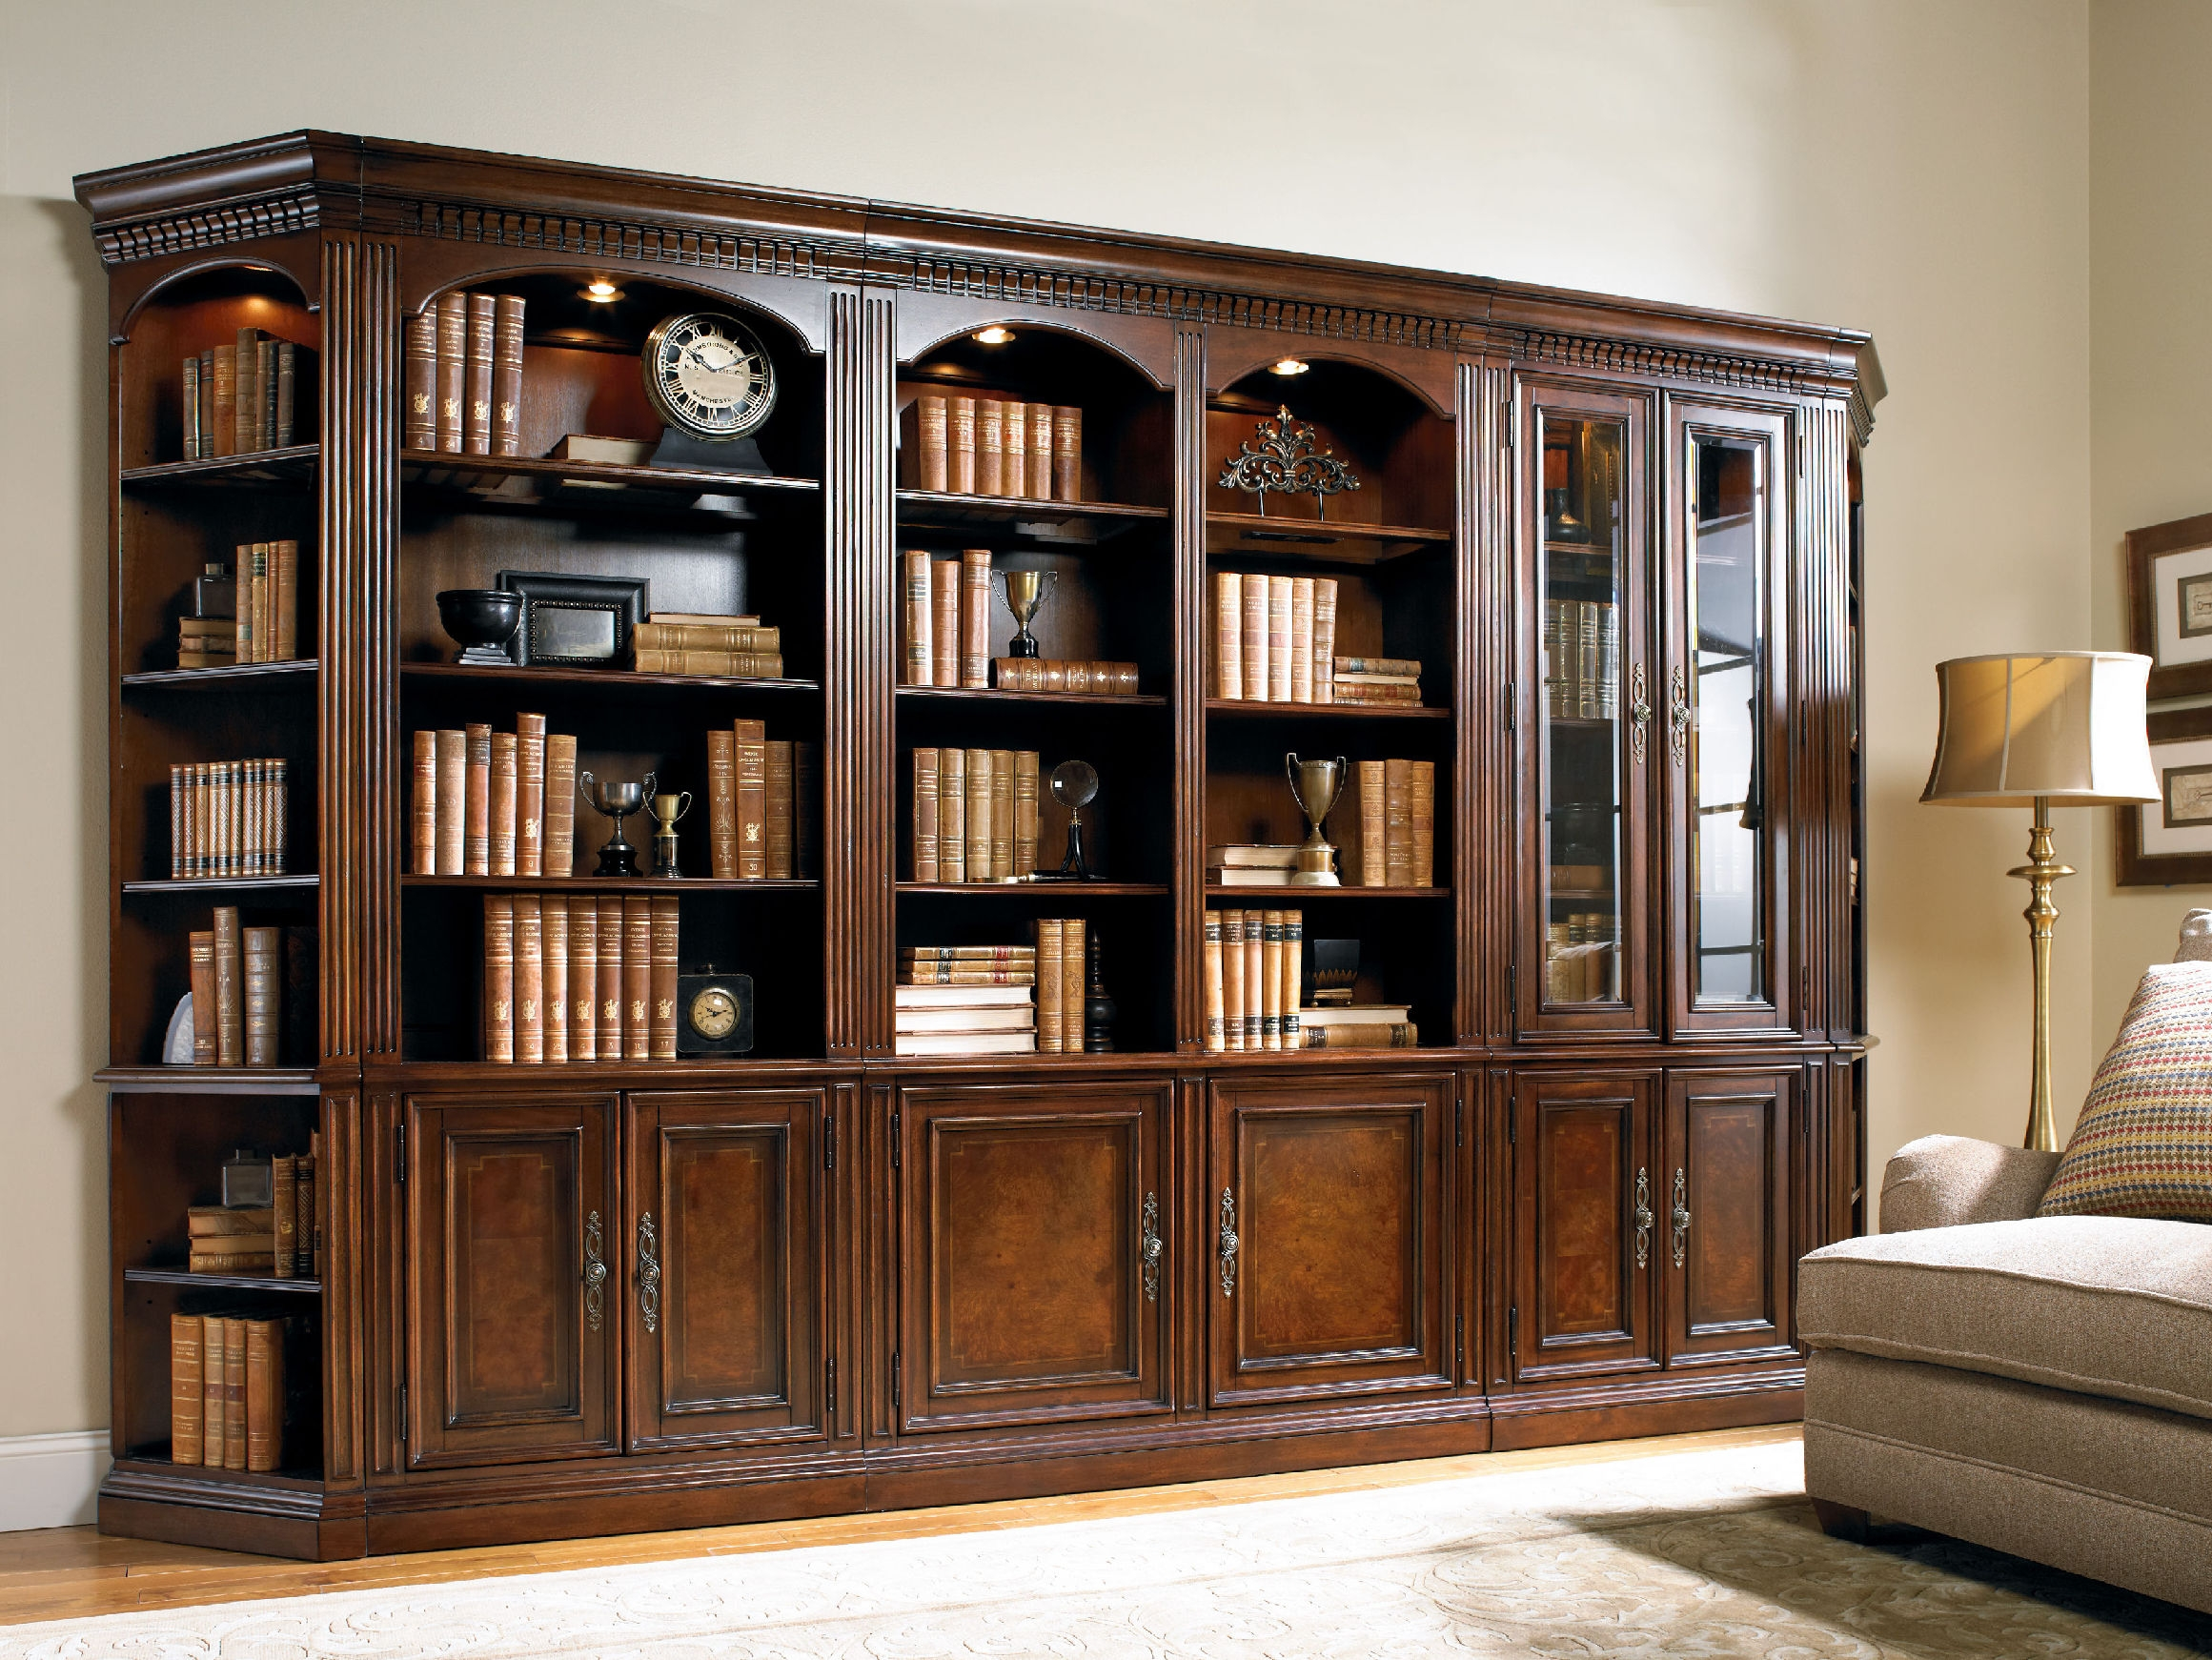 Magnificent Solid Wood Bookcase Cabinet Storage Solid Wood Inside Solid Wood Bookcases (View 7 of 15)